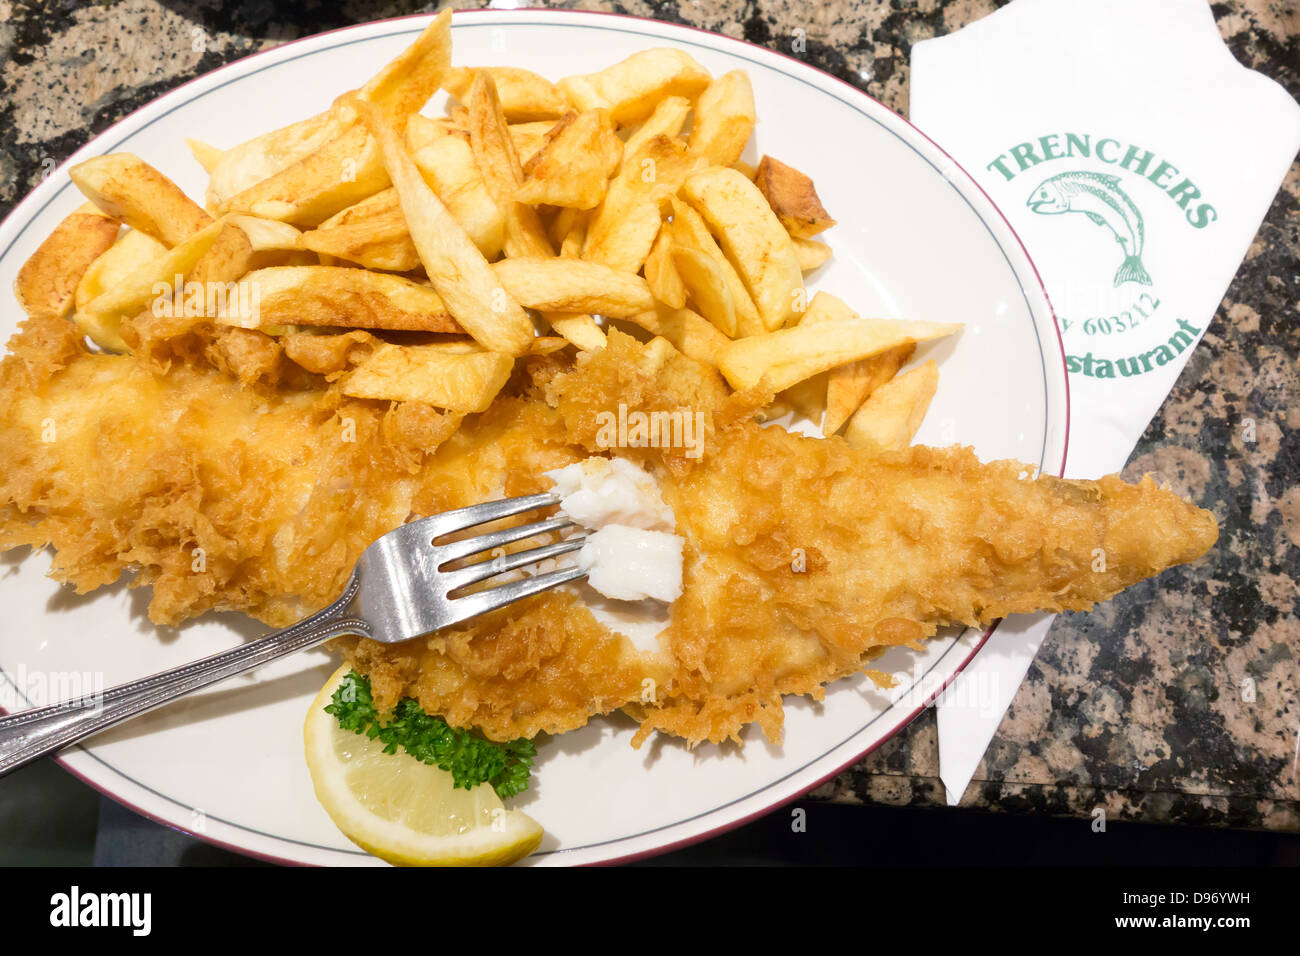 Excellent fish and chips at the famous Trenchers Café in Whitby - Stock Image